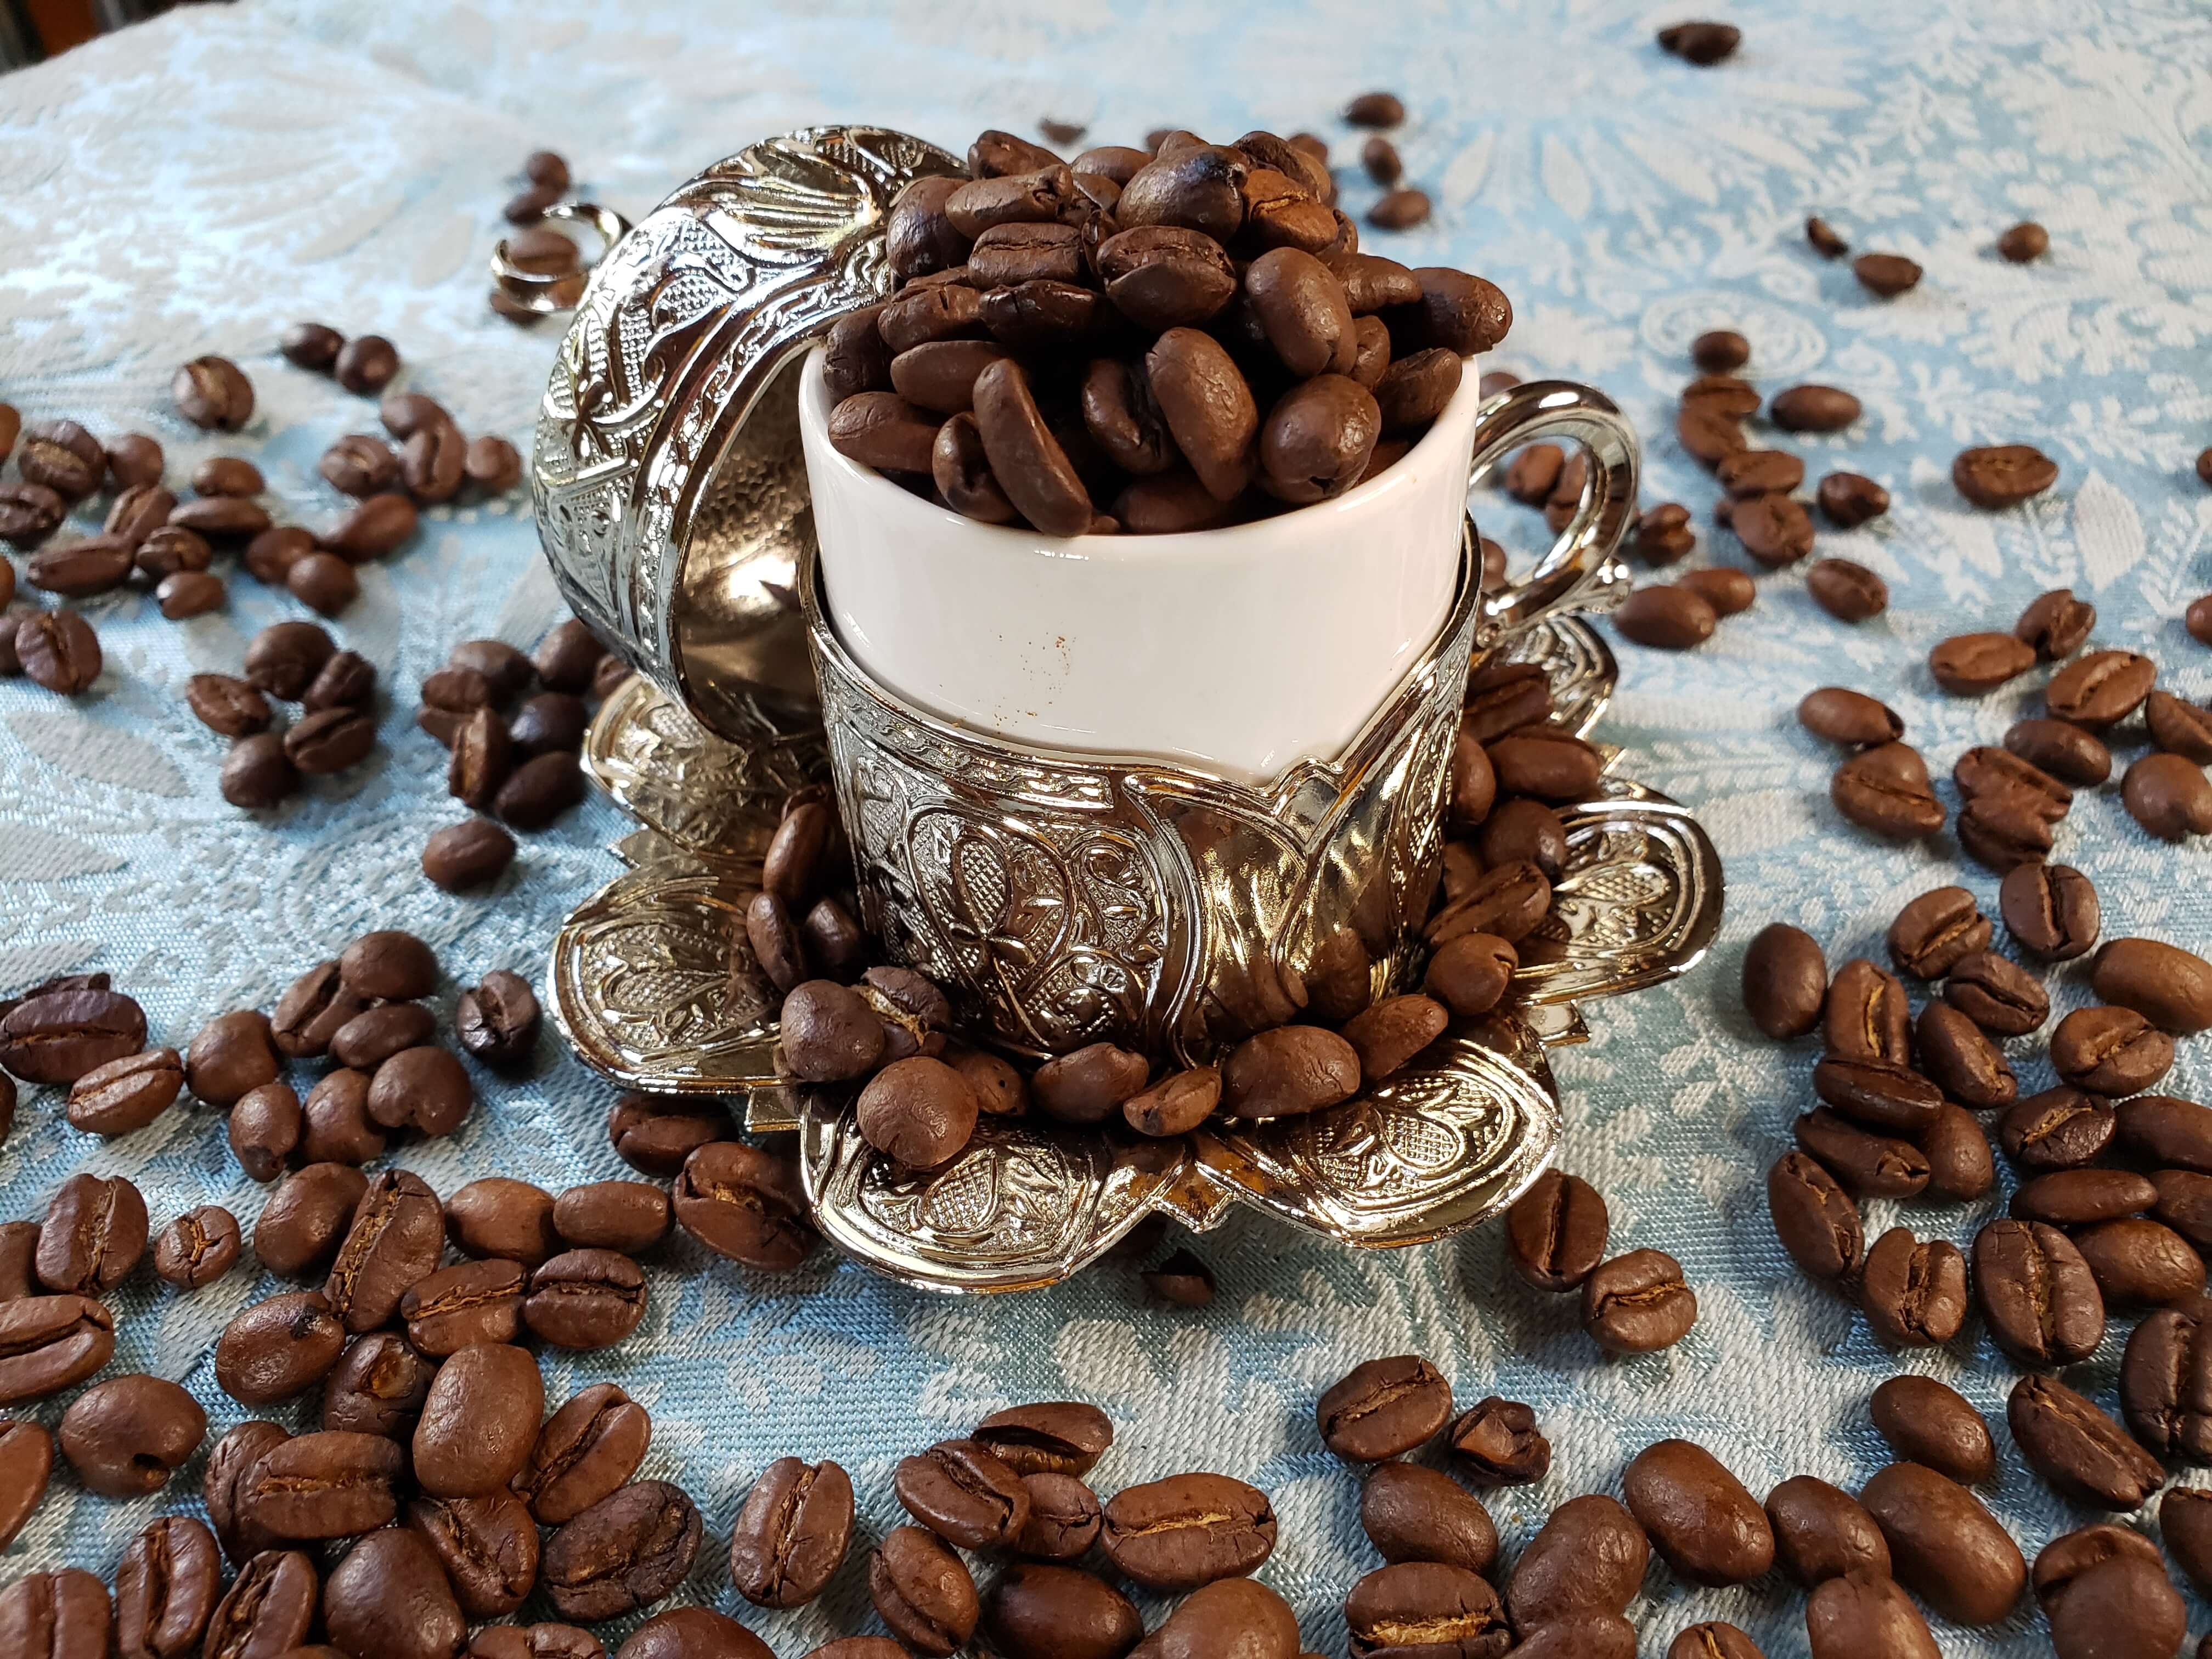 silver-turkish-coffee-cup-with-beans